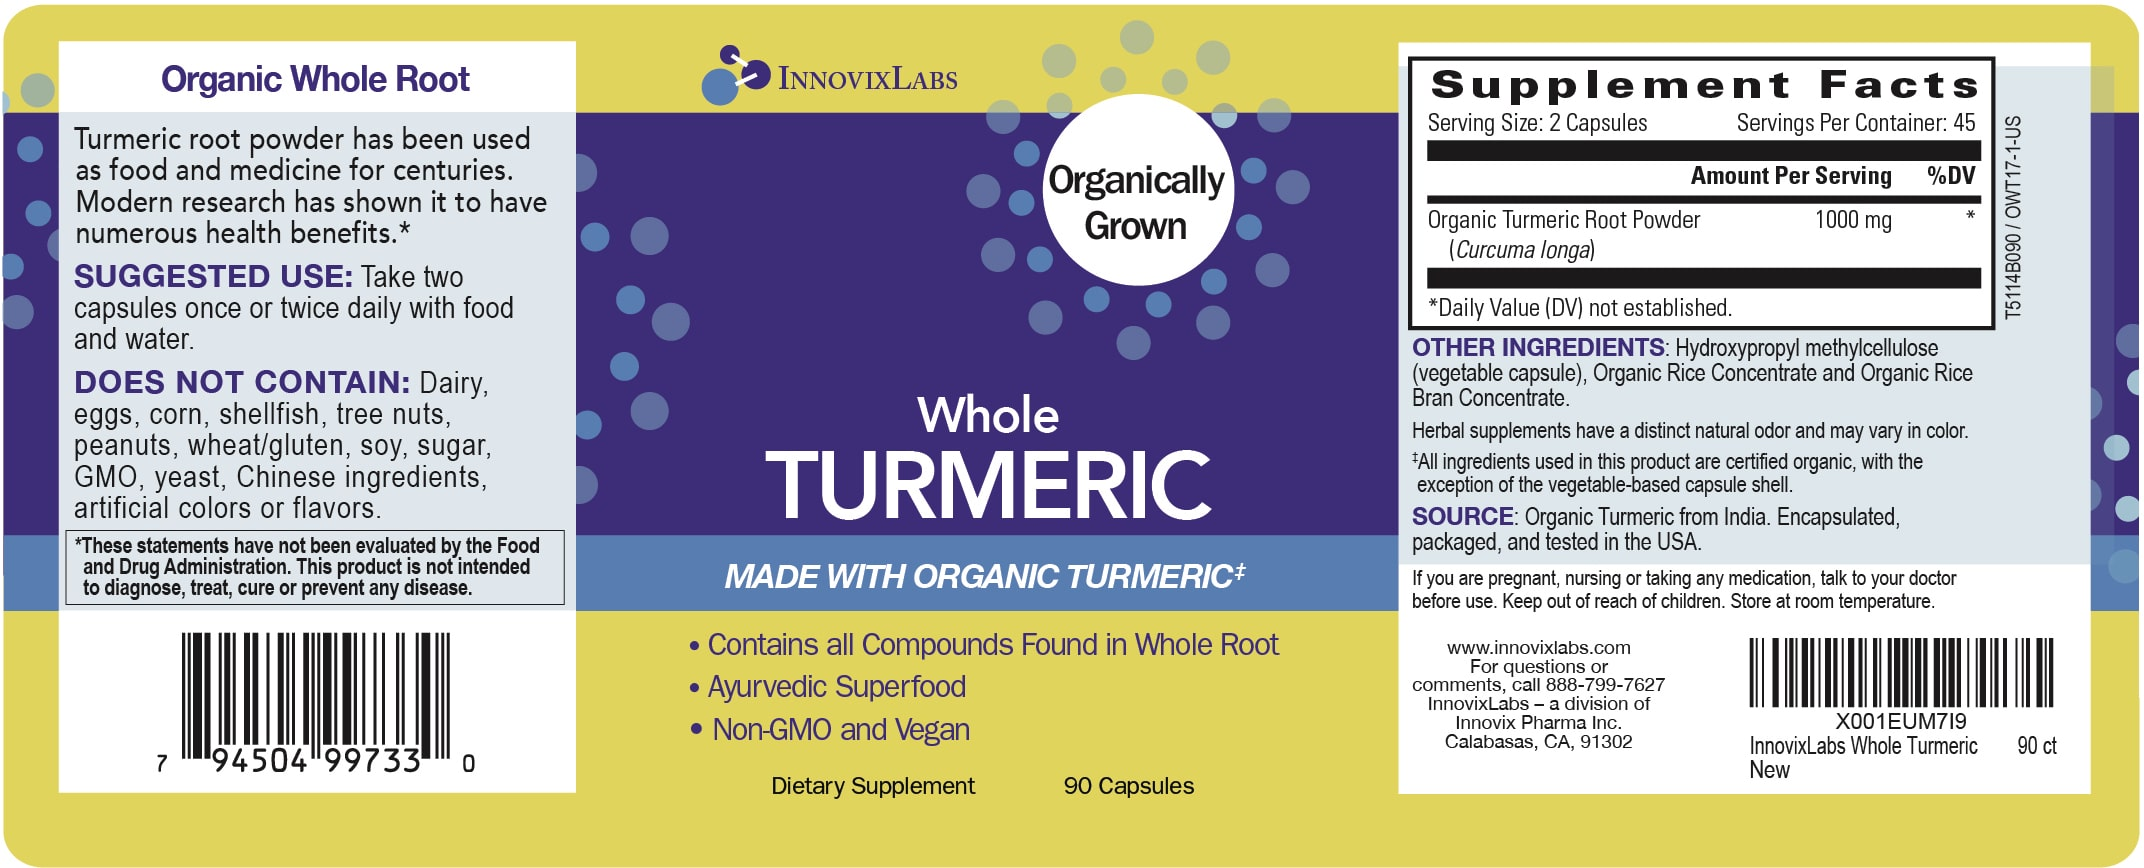 Whole Tumeric label